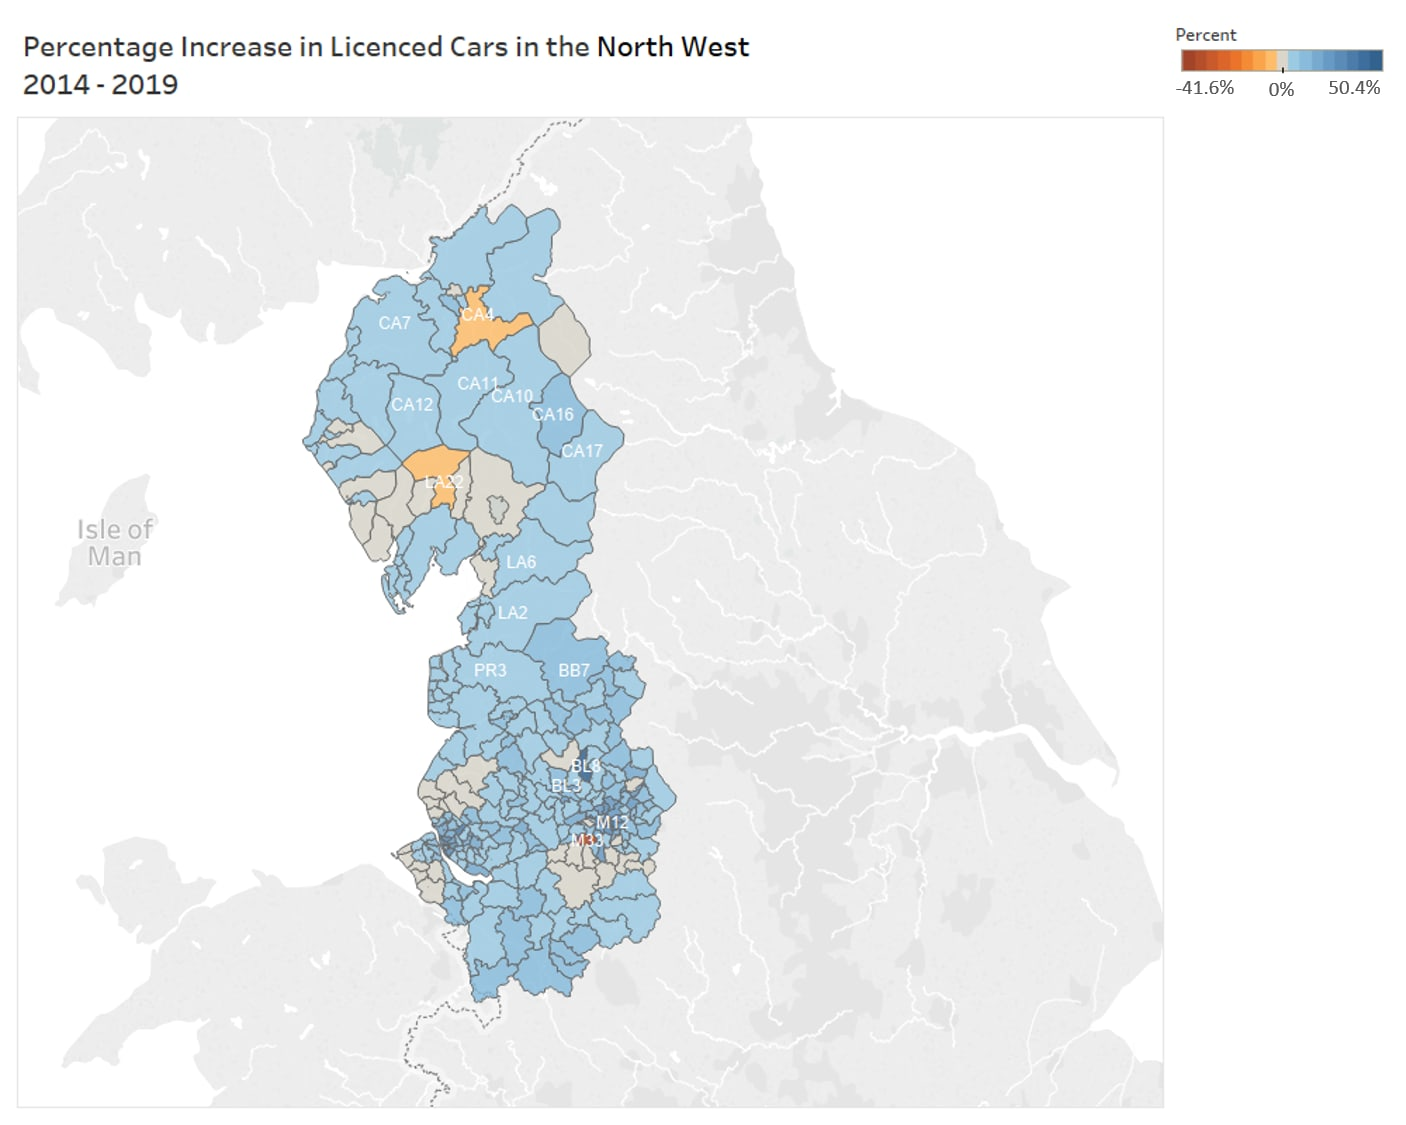 Heatmap showing the percentage change in licenced cars in the North West